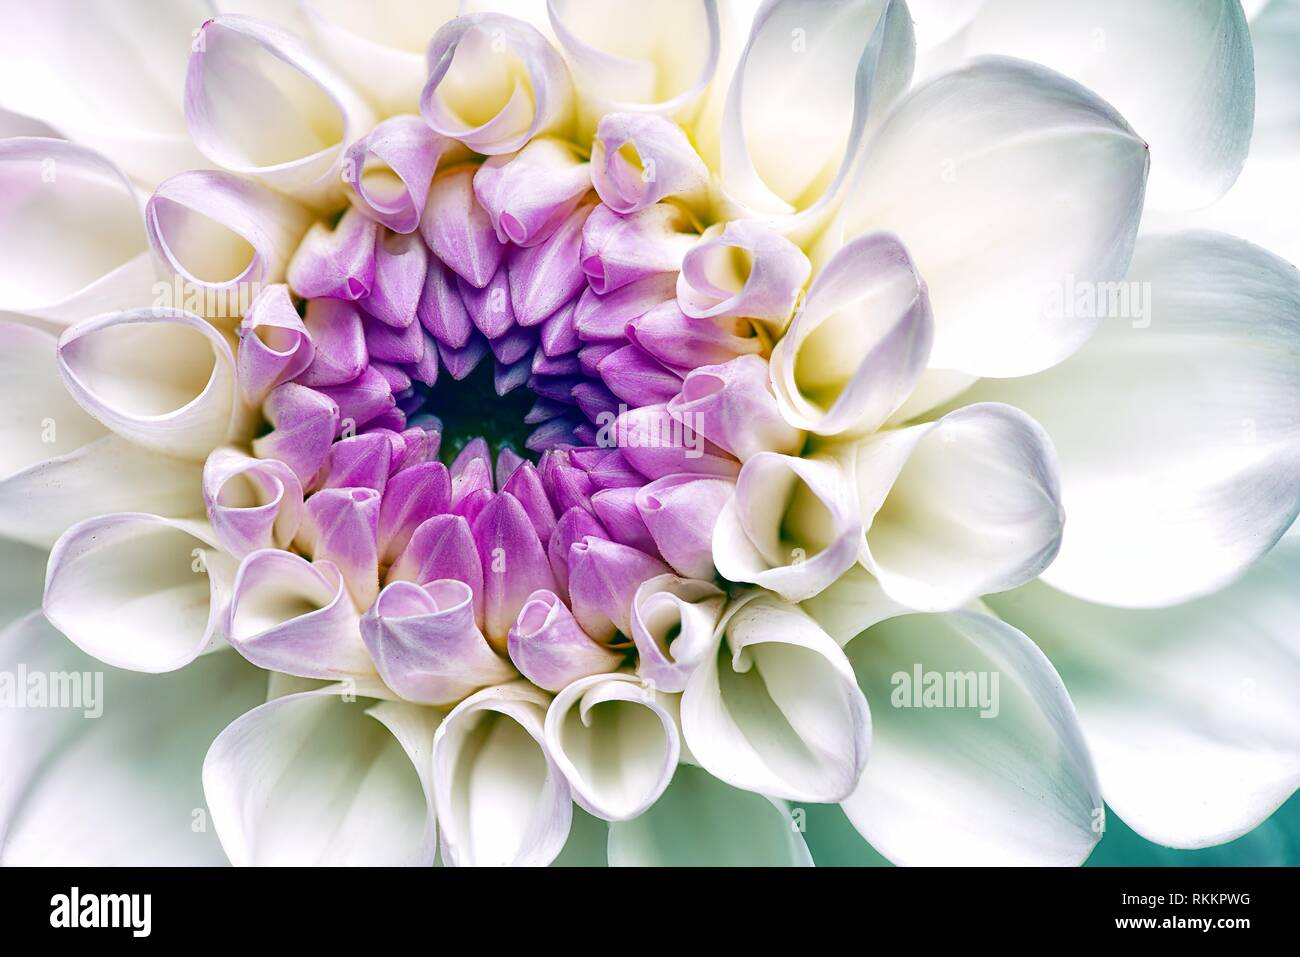 White Dahlia Flower Abstract Floral Backgrounds Stock Photo